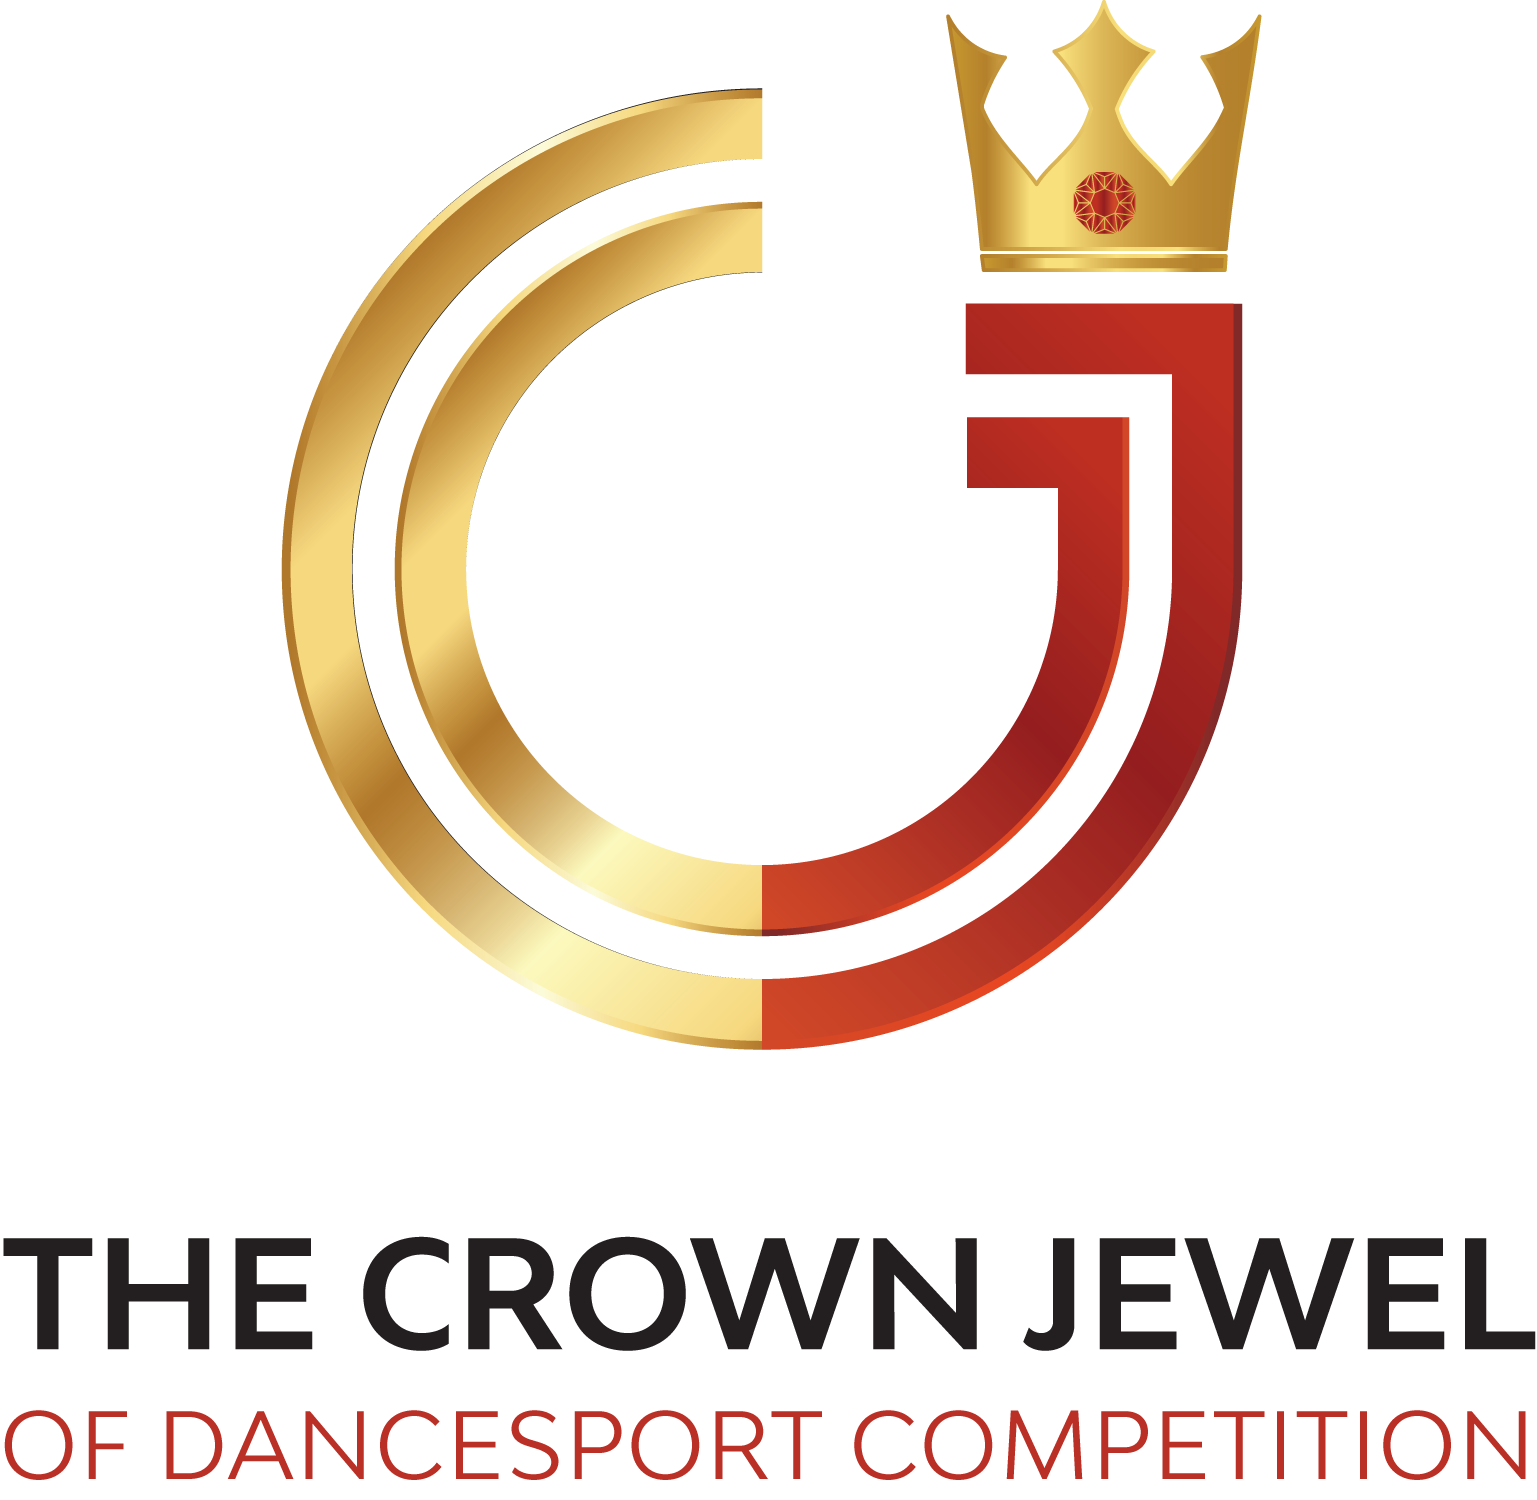 crown-jewel-of-dancesport-1547059381.png